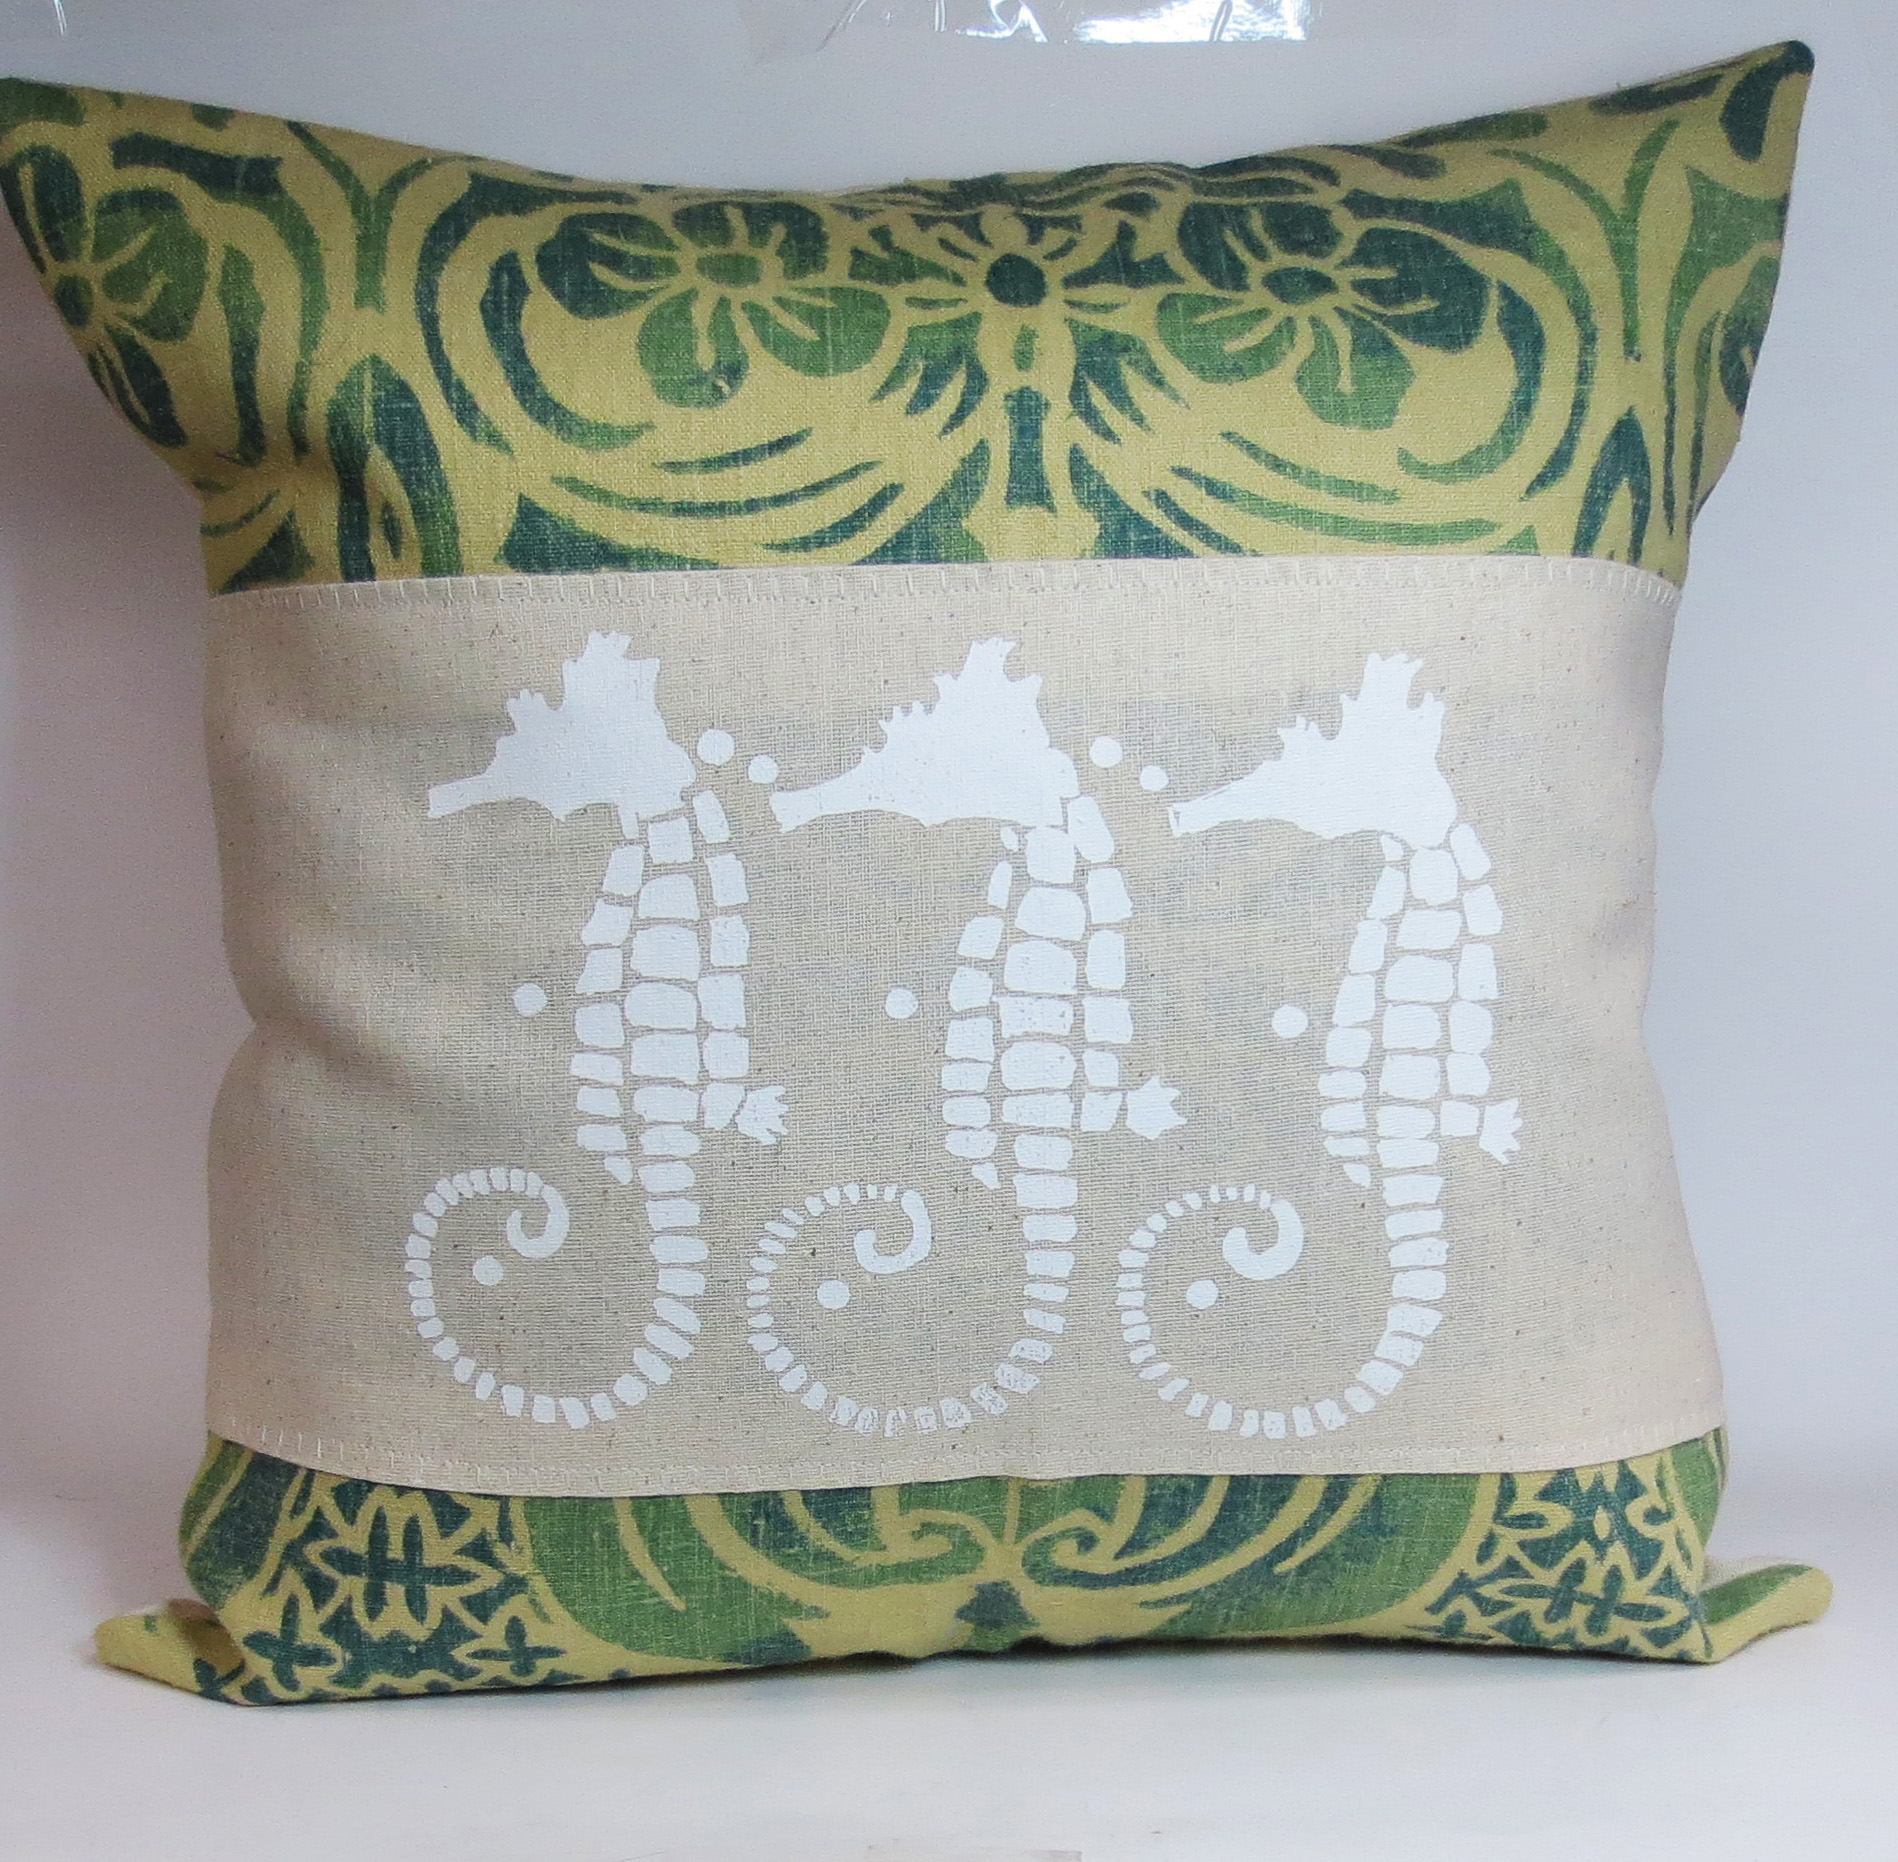 Decorative Throw Pillow Cushion Cover With Screen Print White Sea Horses Beach Shabby Chic Theme ...